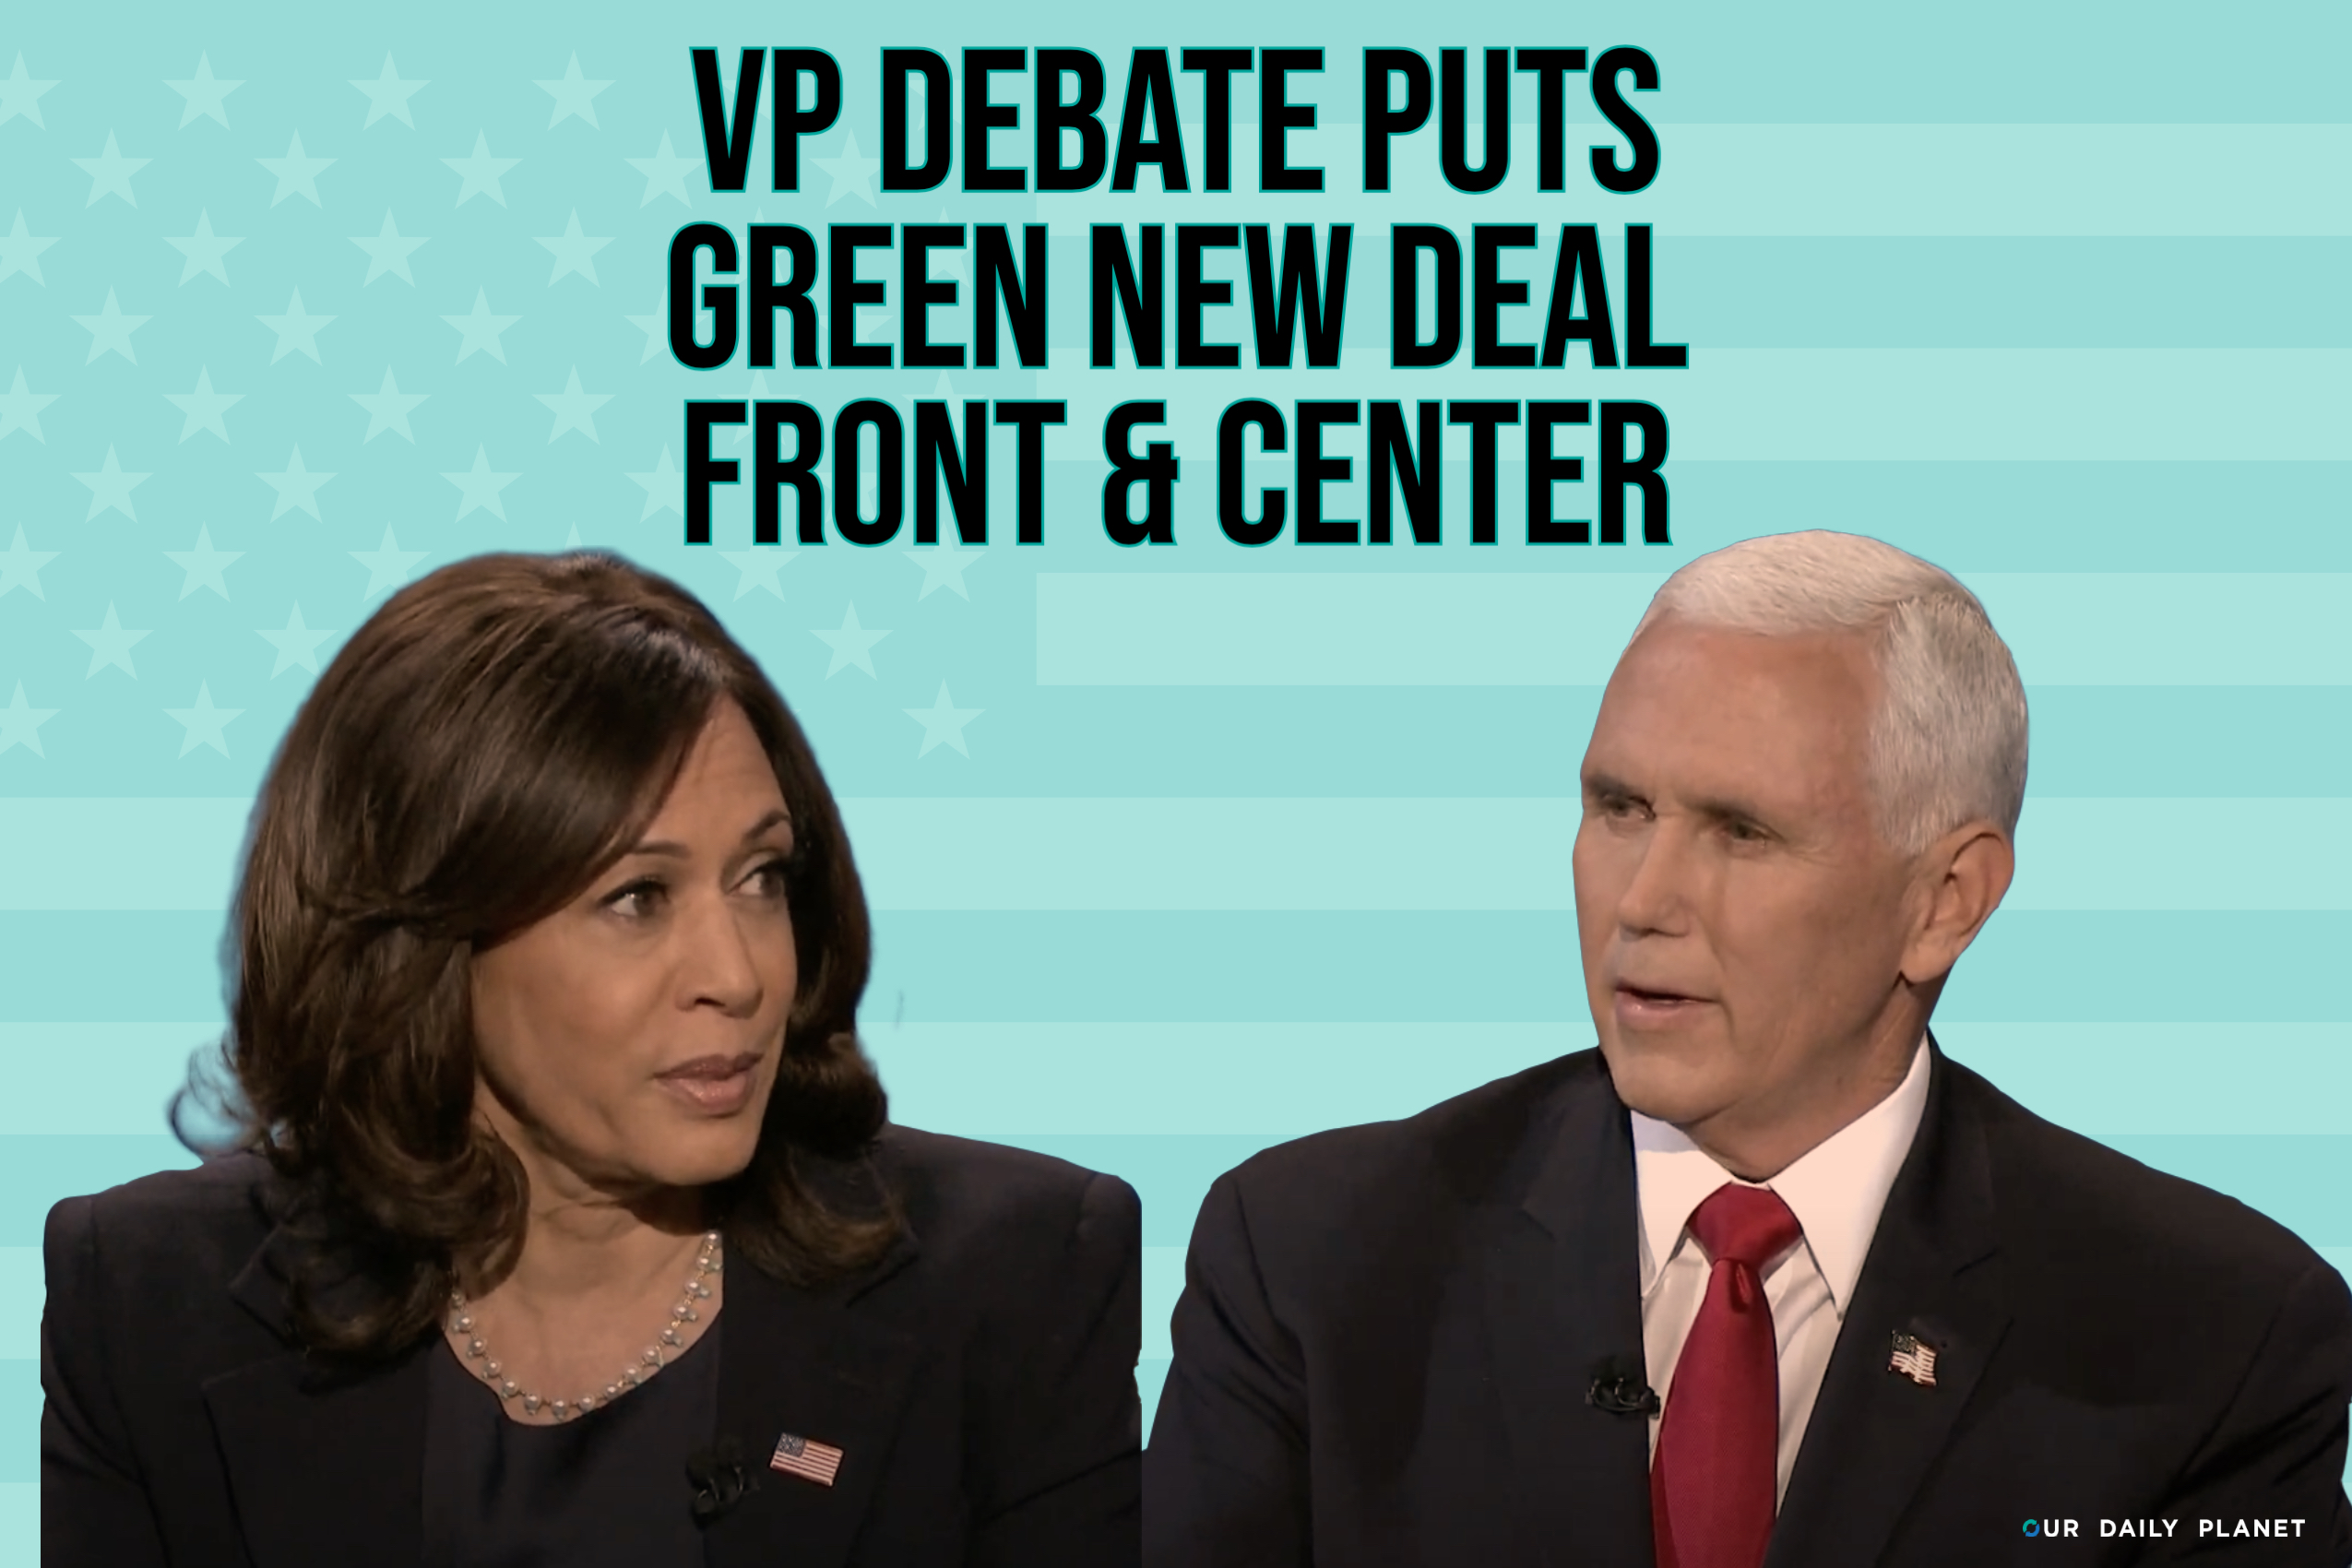 Pence Takes Aim at Green New Deal in VP Debate With Little Pushback